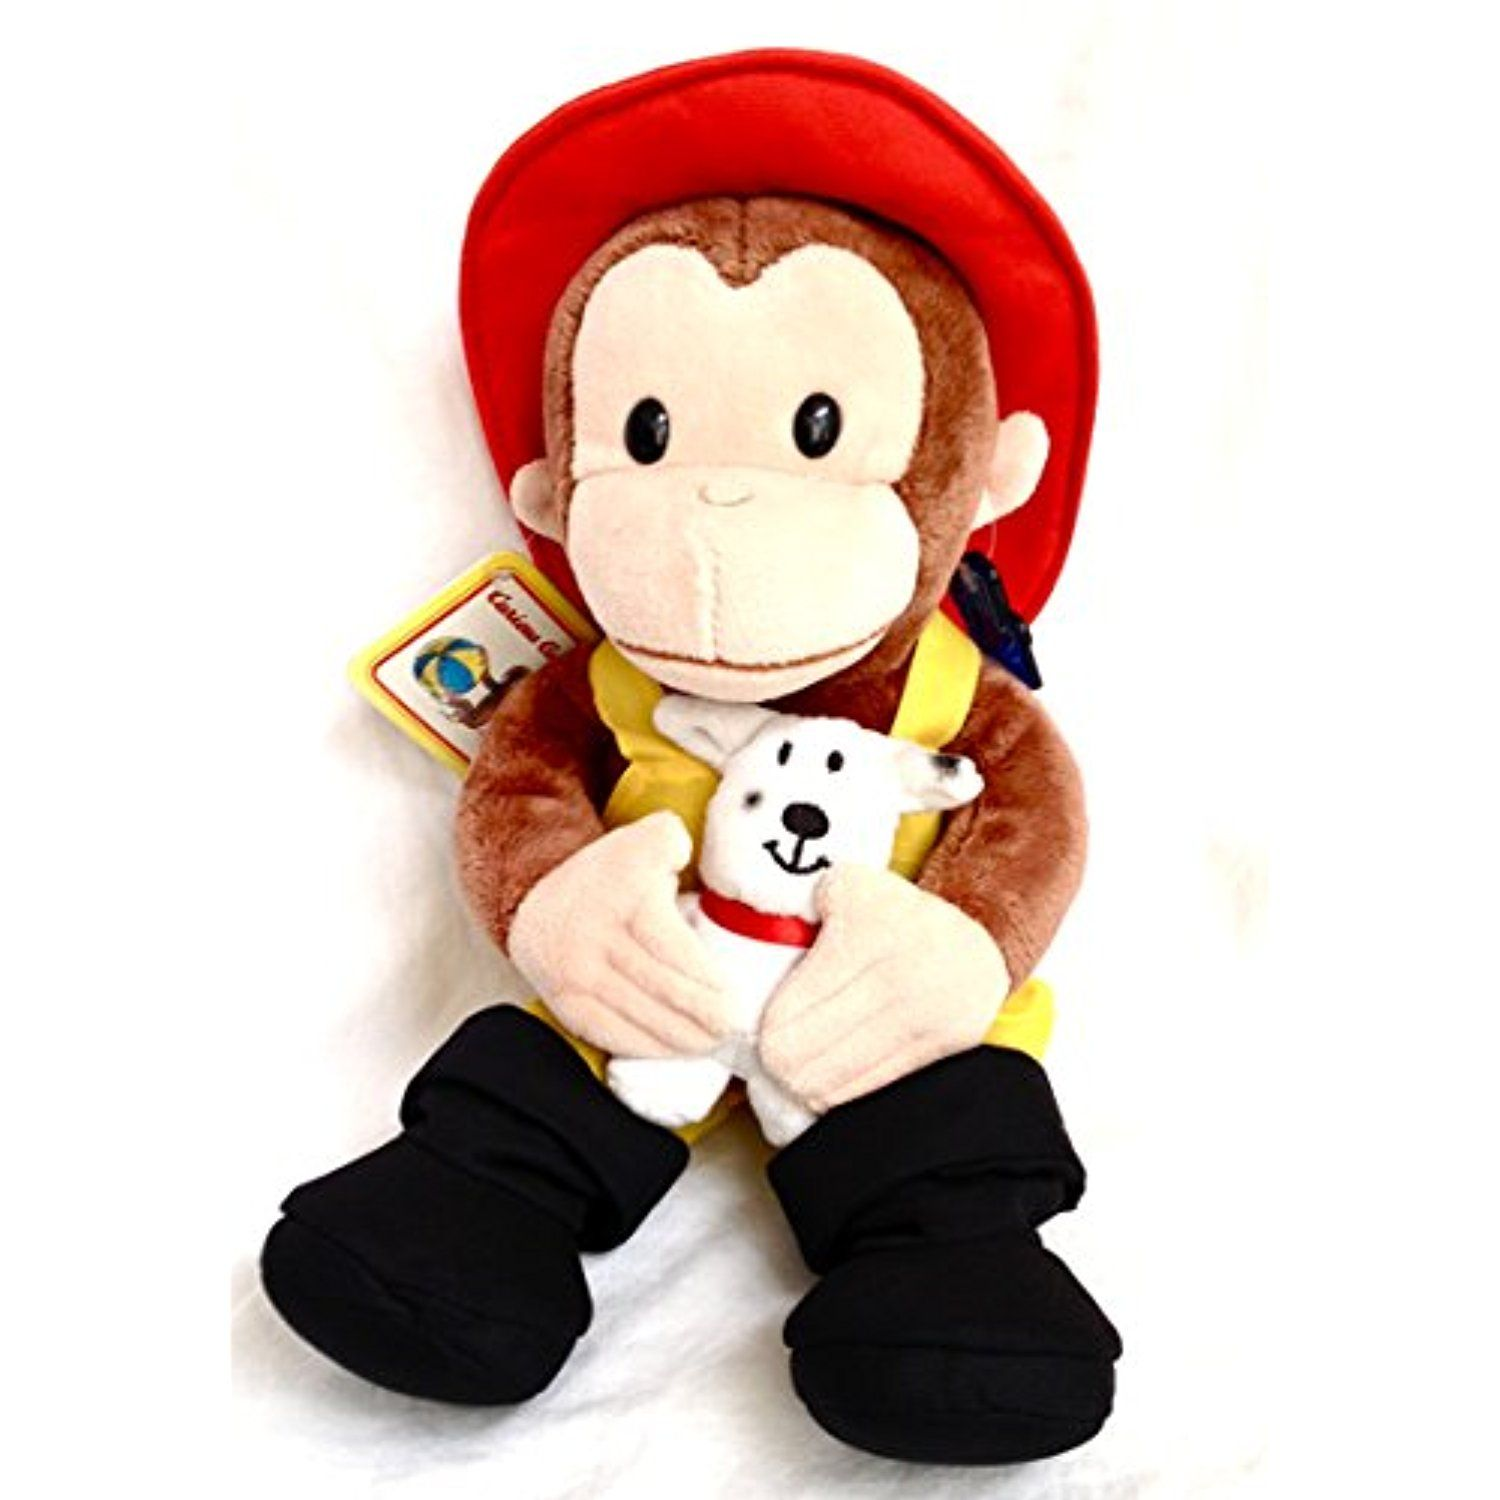 Applause Curious George Fireman 11 Plush Monkey Gt Gt Gt Check